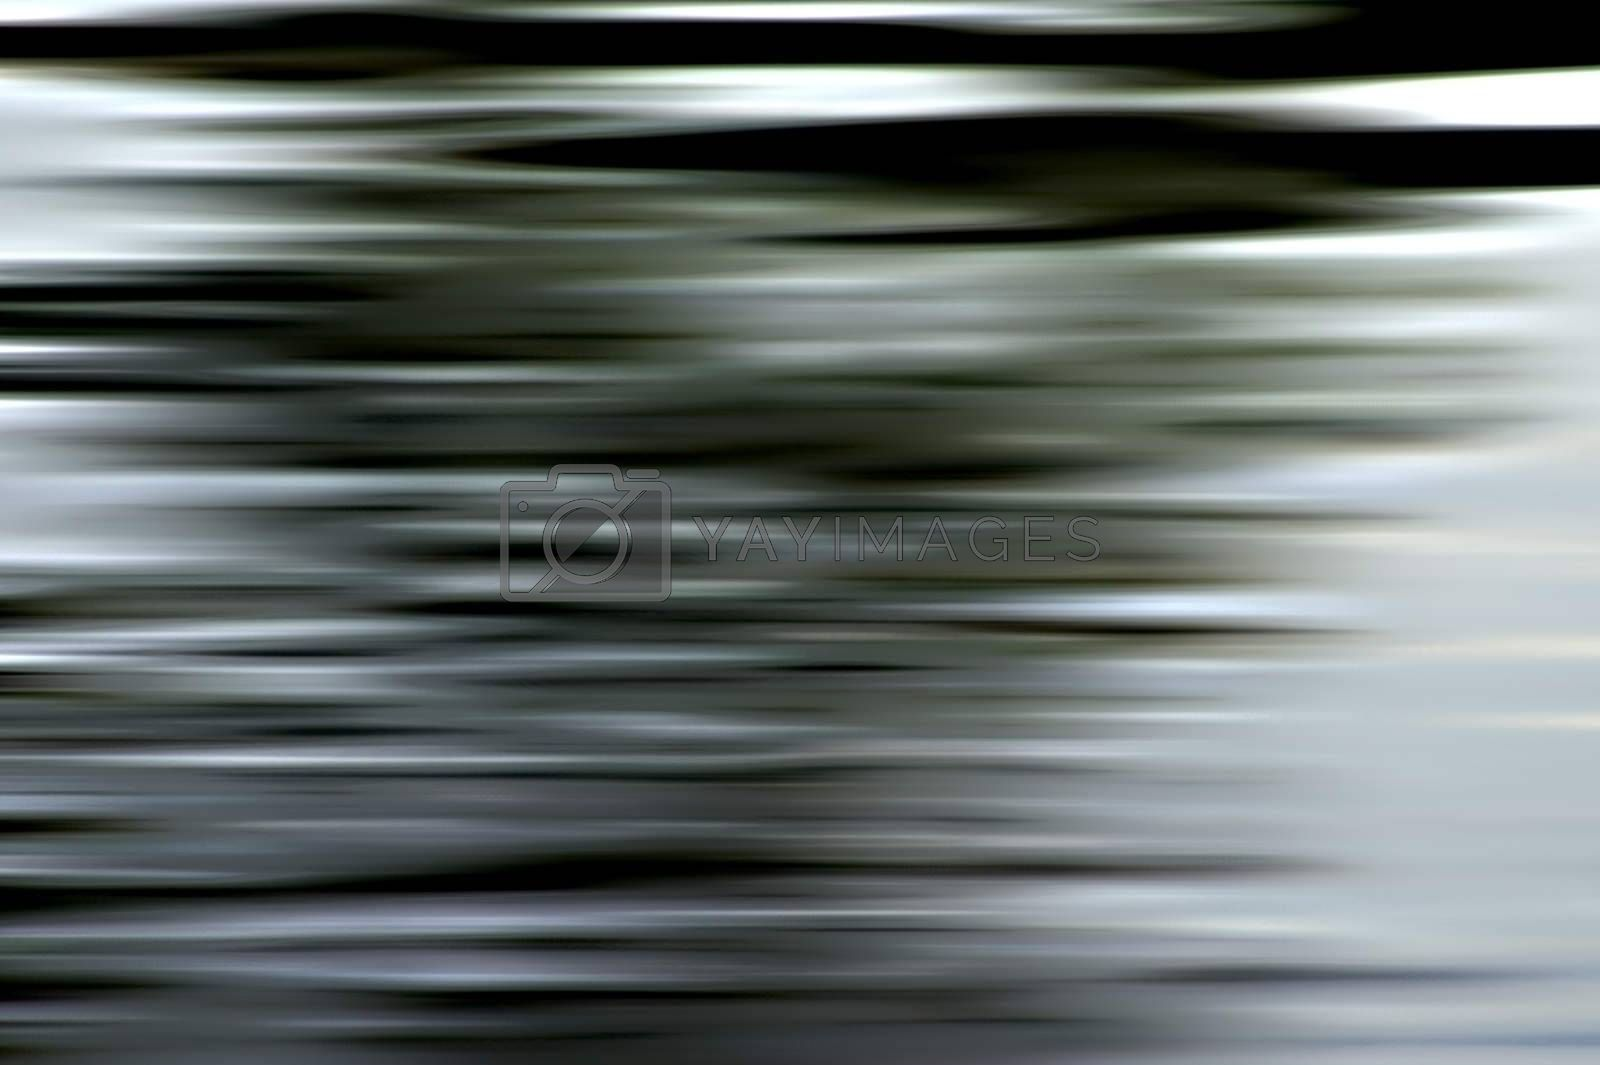 A slurred and abstract corrugated surface.